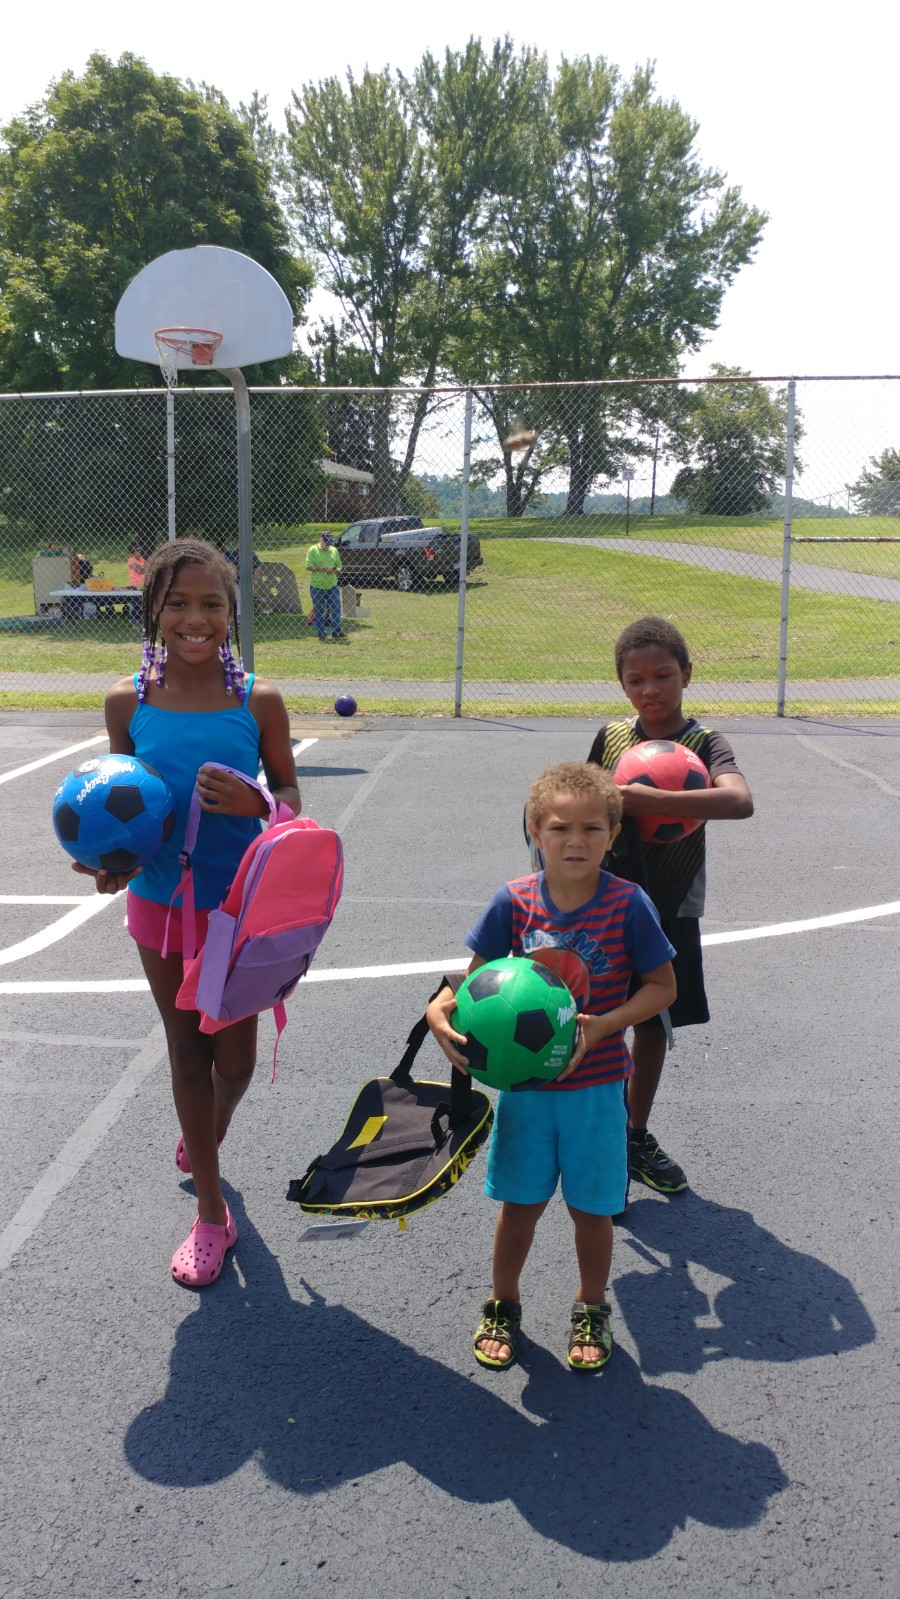 At Homecrest Manor, you'll find a playground, basketball court and a baseball field for our youngest friends to enjoy!